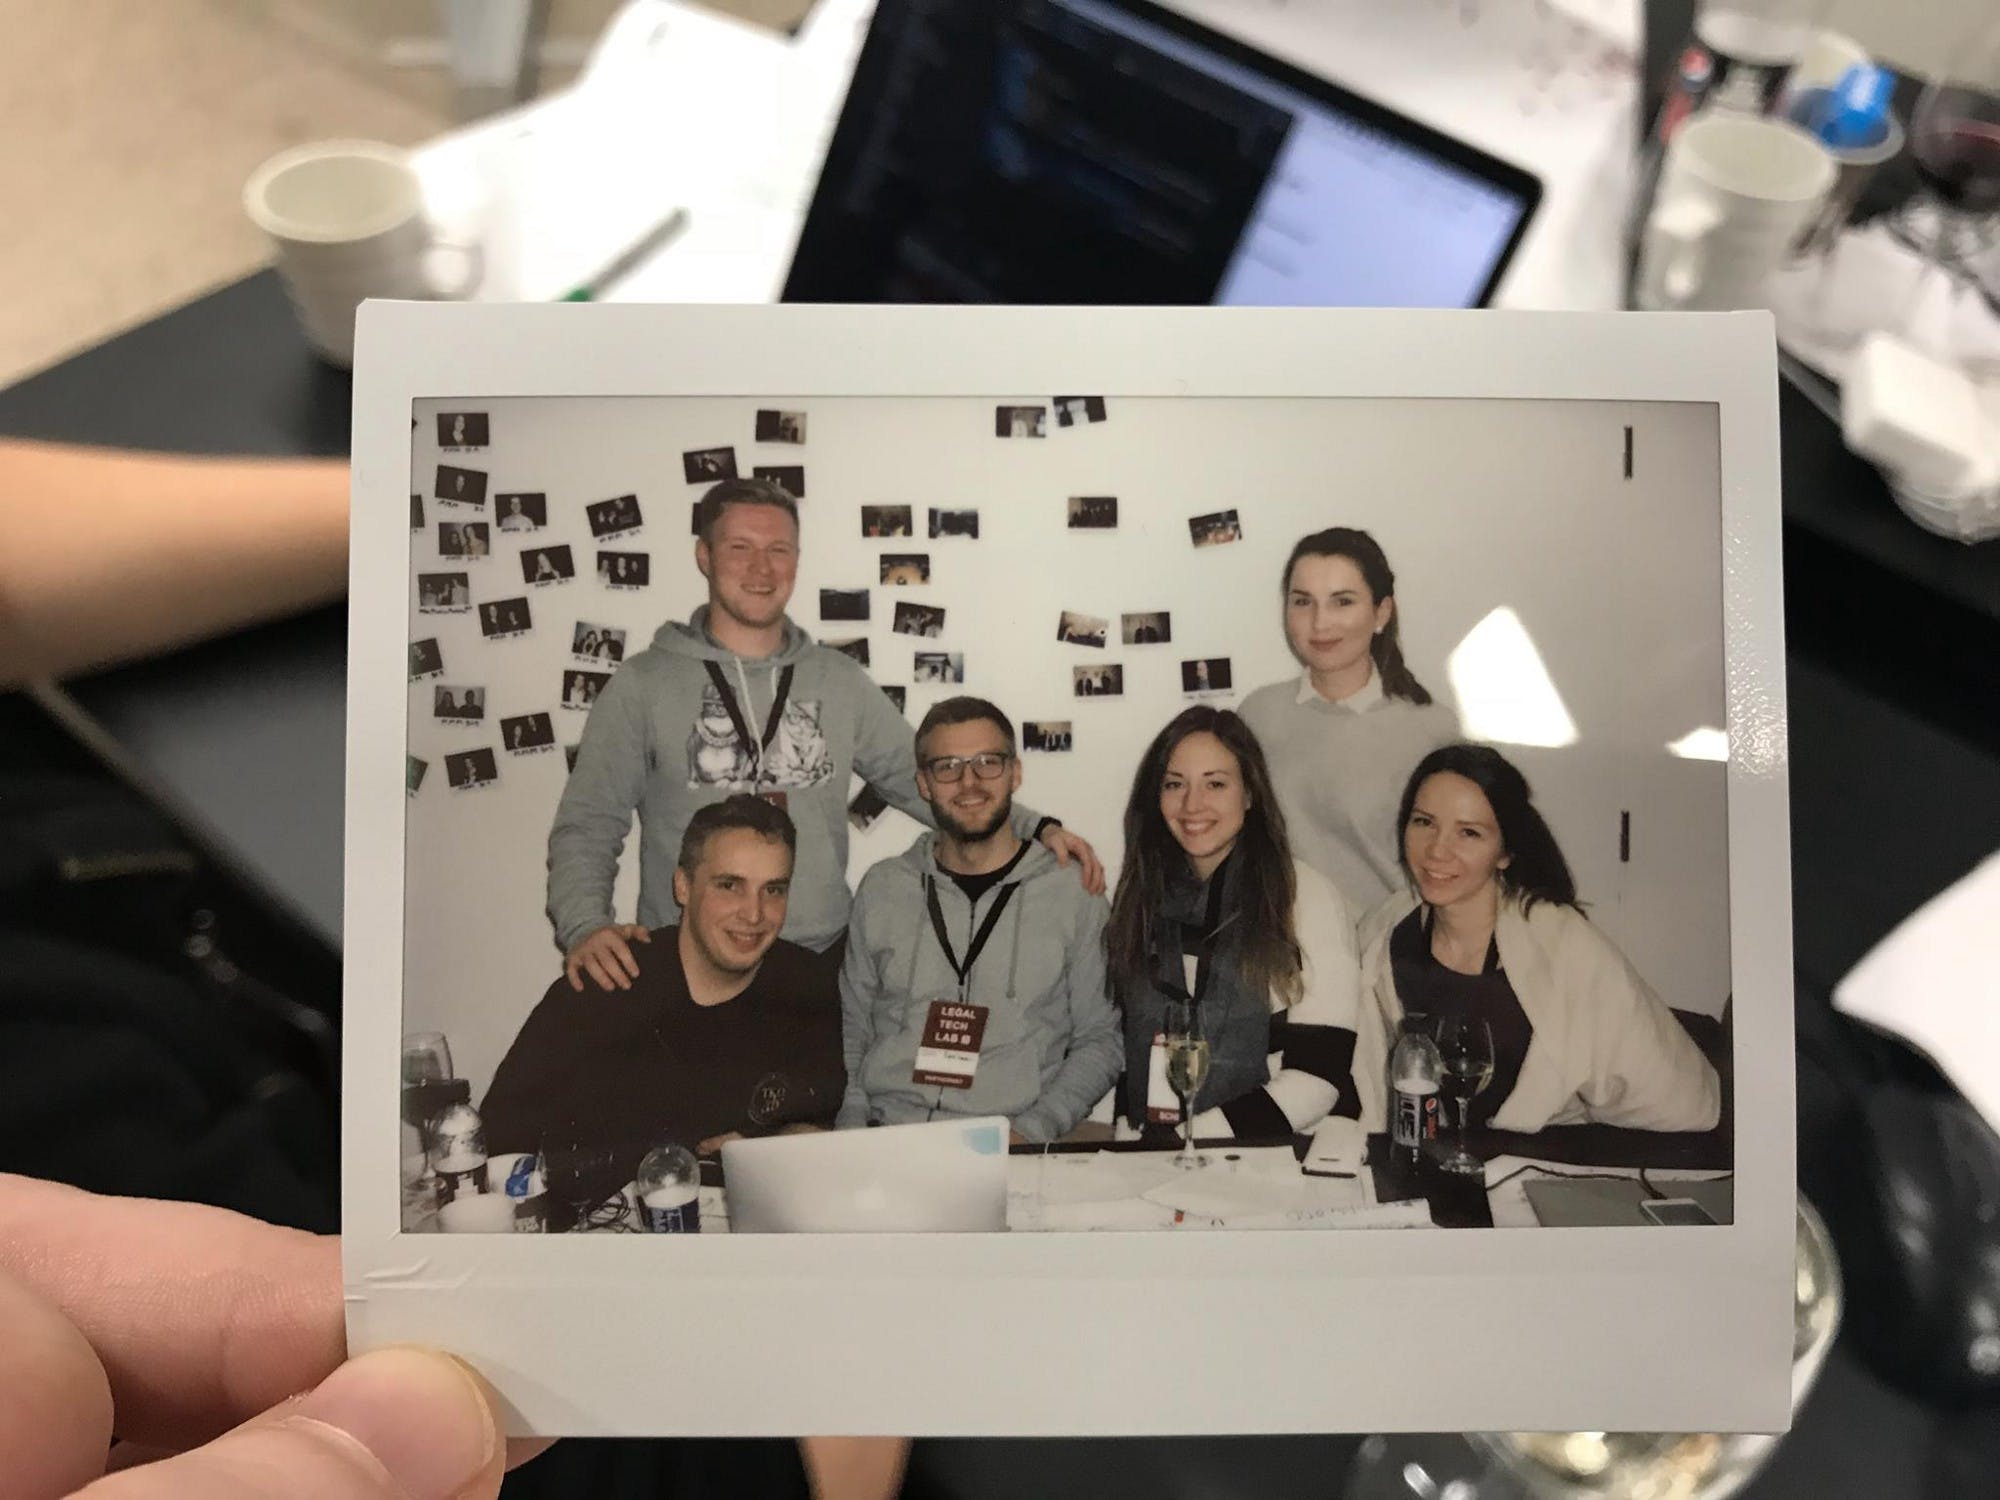 Polaroid picture of the team